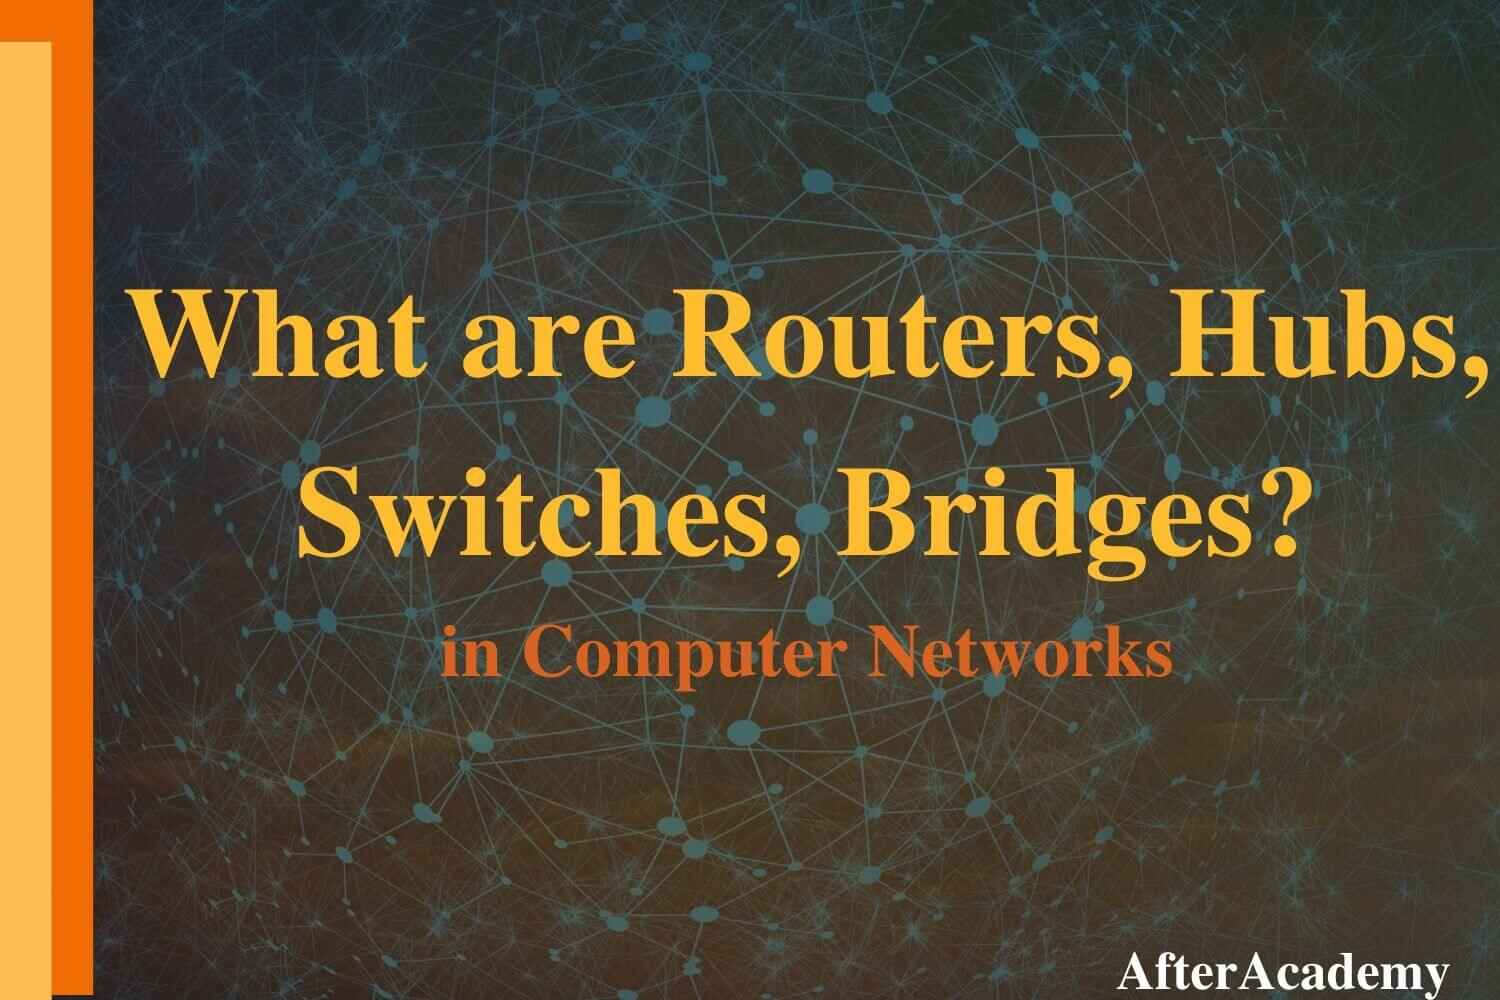 What are Routers, Hubs, Switches, Bridges?